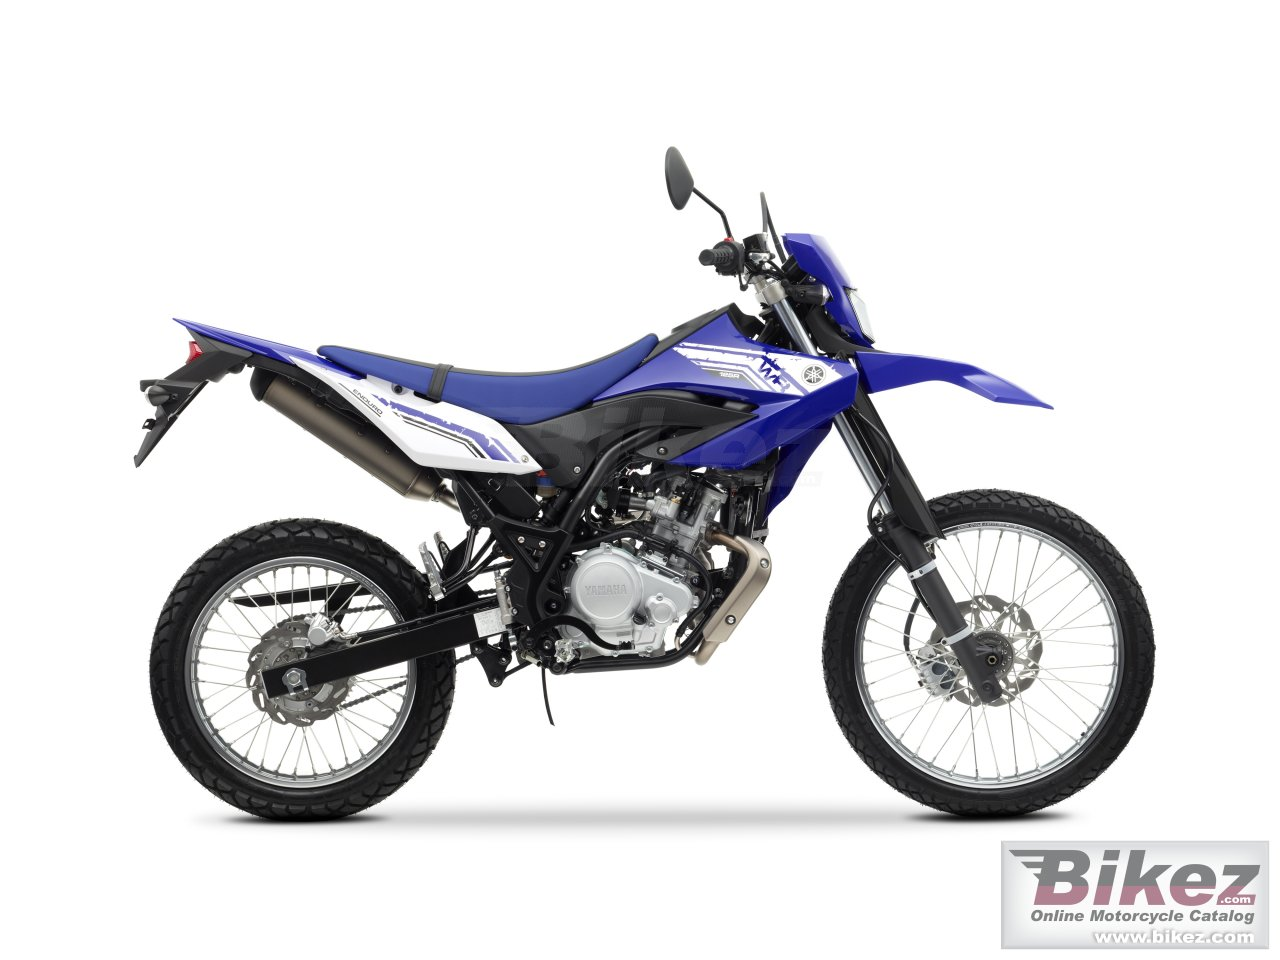 Big Yamaha wr125r picture and wallpaper from Bikez.com